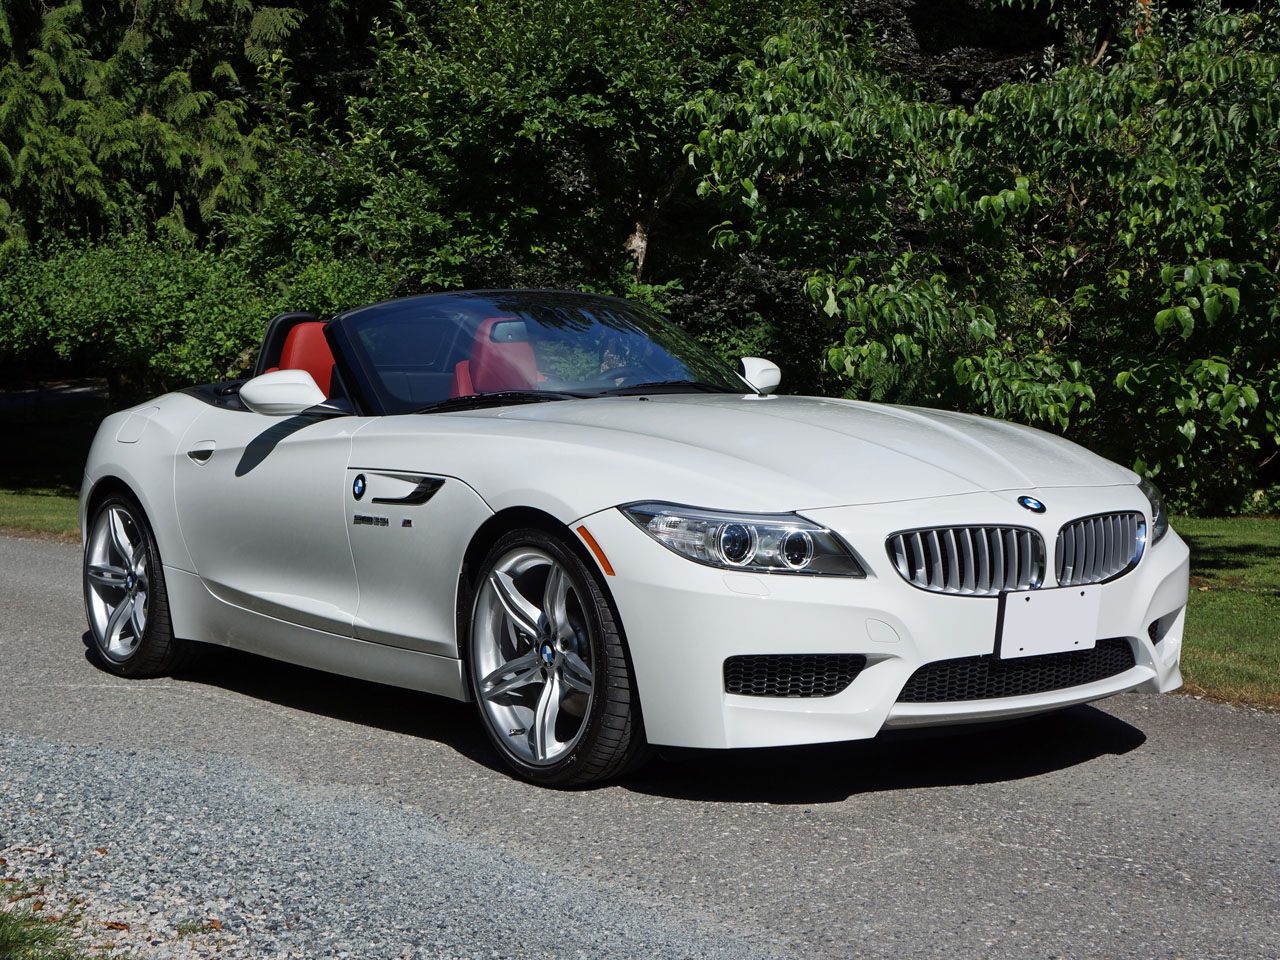 2015 Bmw Z4 Sdrive35i Road Test Review Carcostcanada